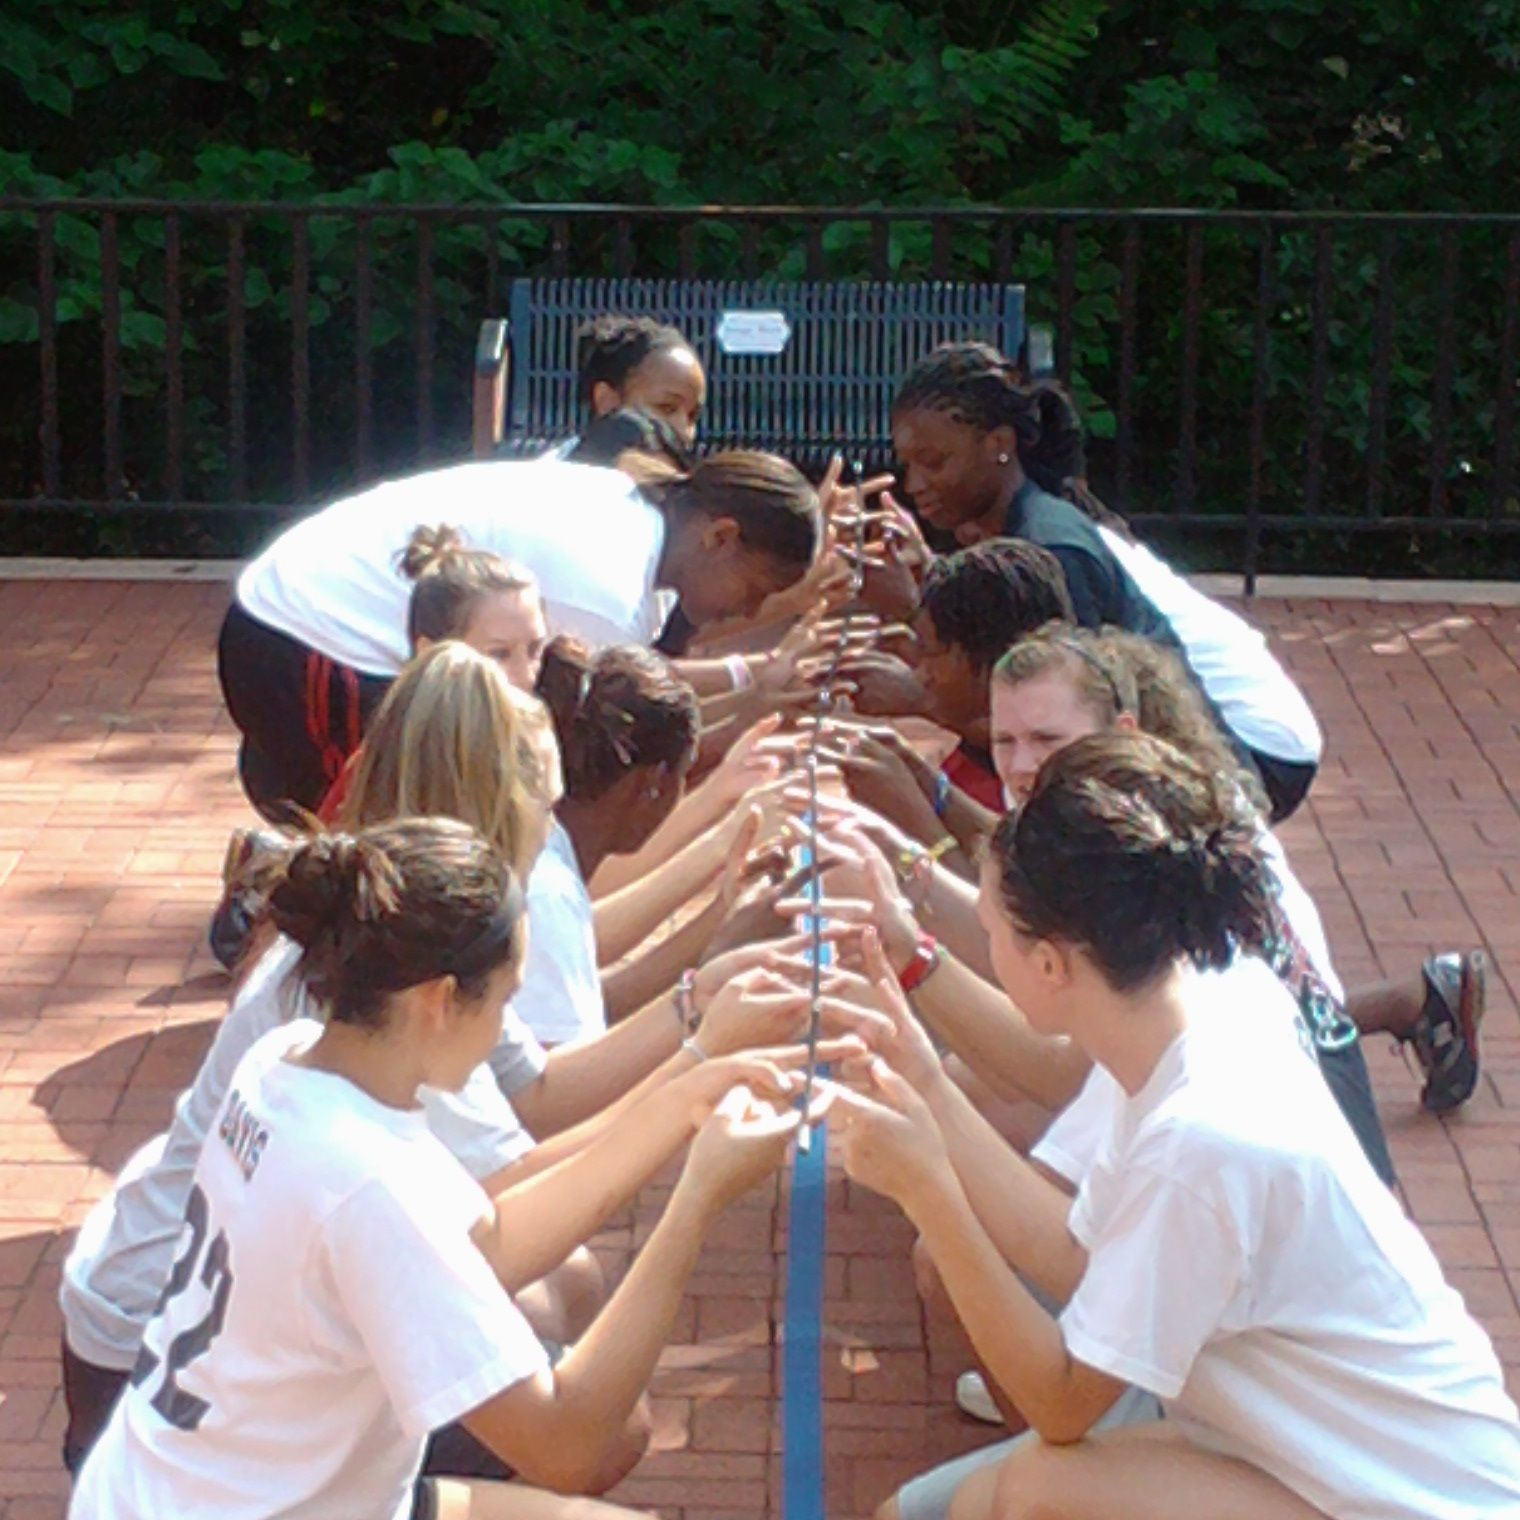 Athletic Team Building to Connect Athletes and Develop